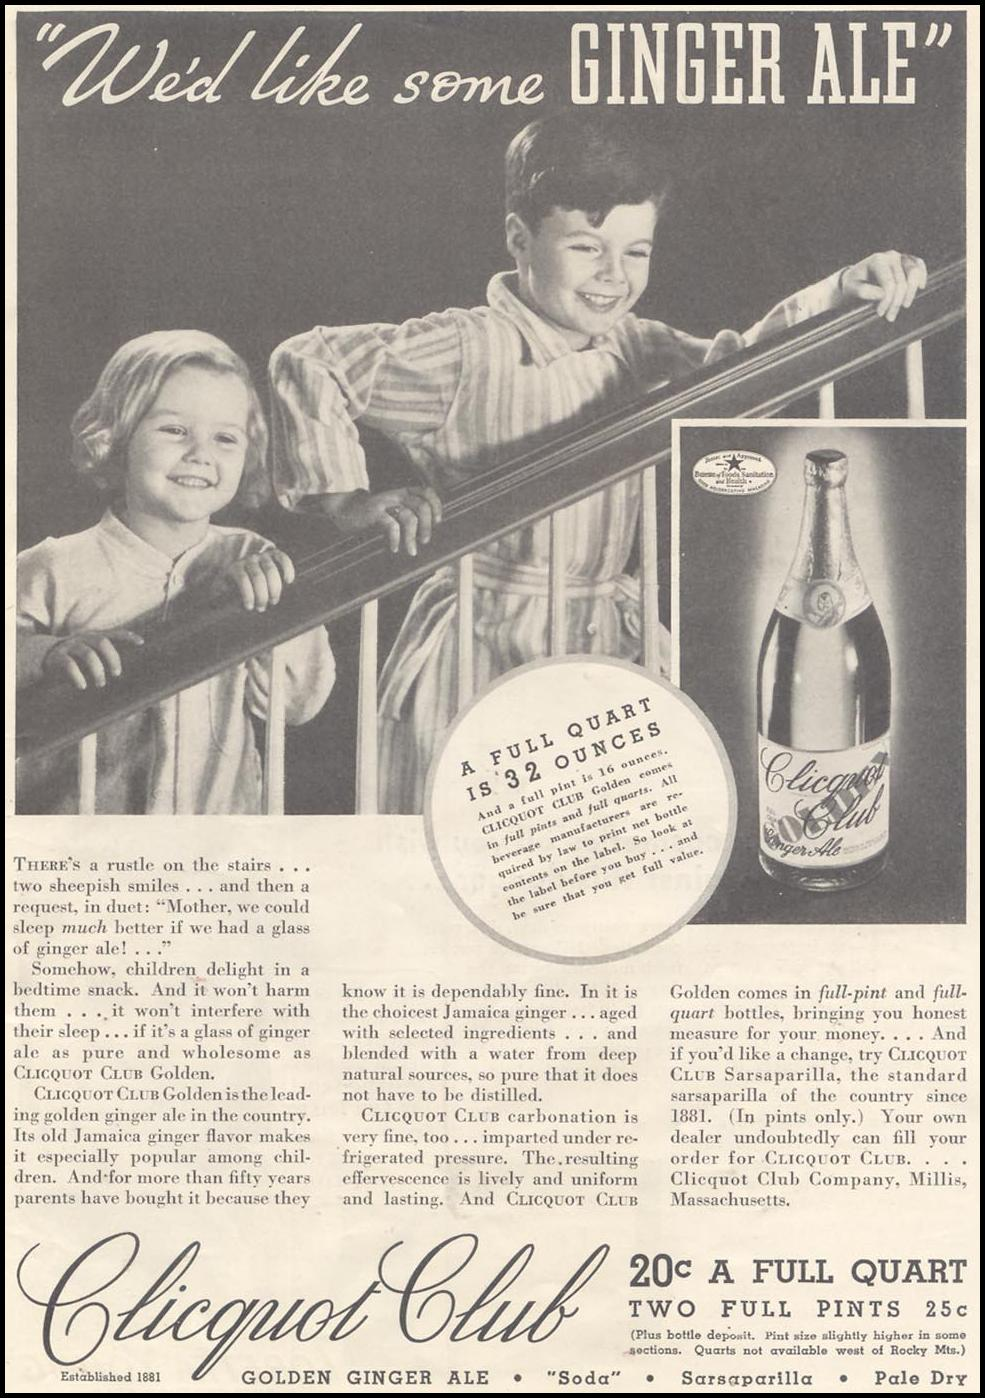 CLICQUOT CLUB GOLDEN GINGER ALE